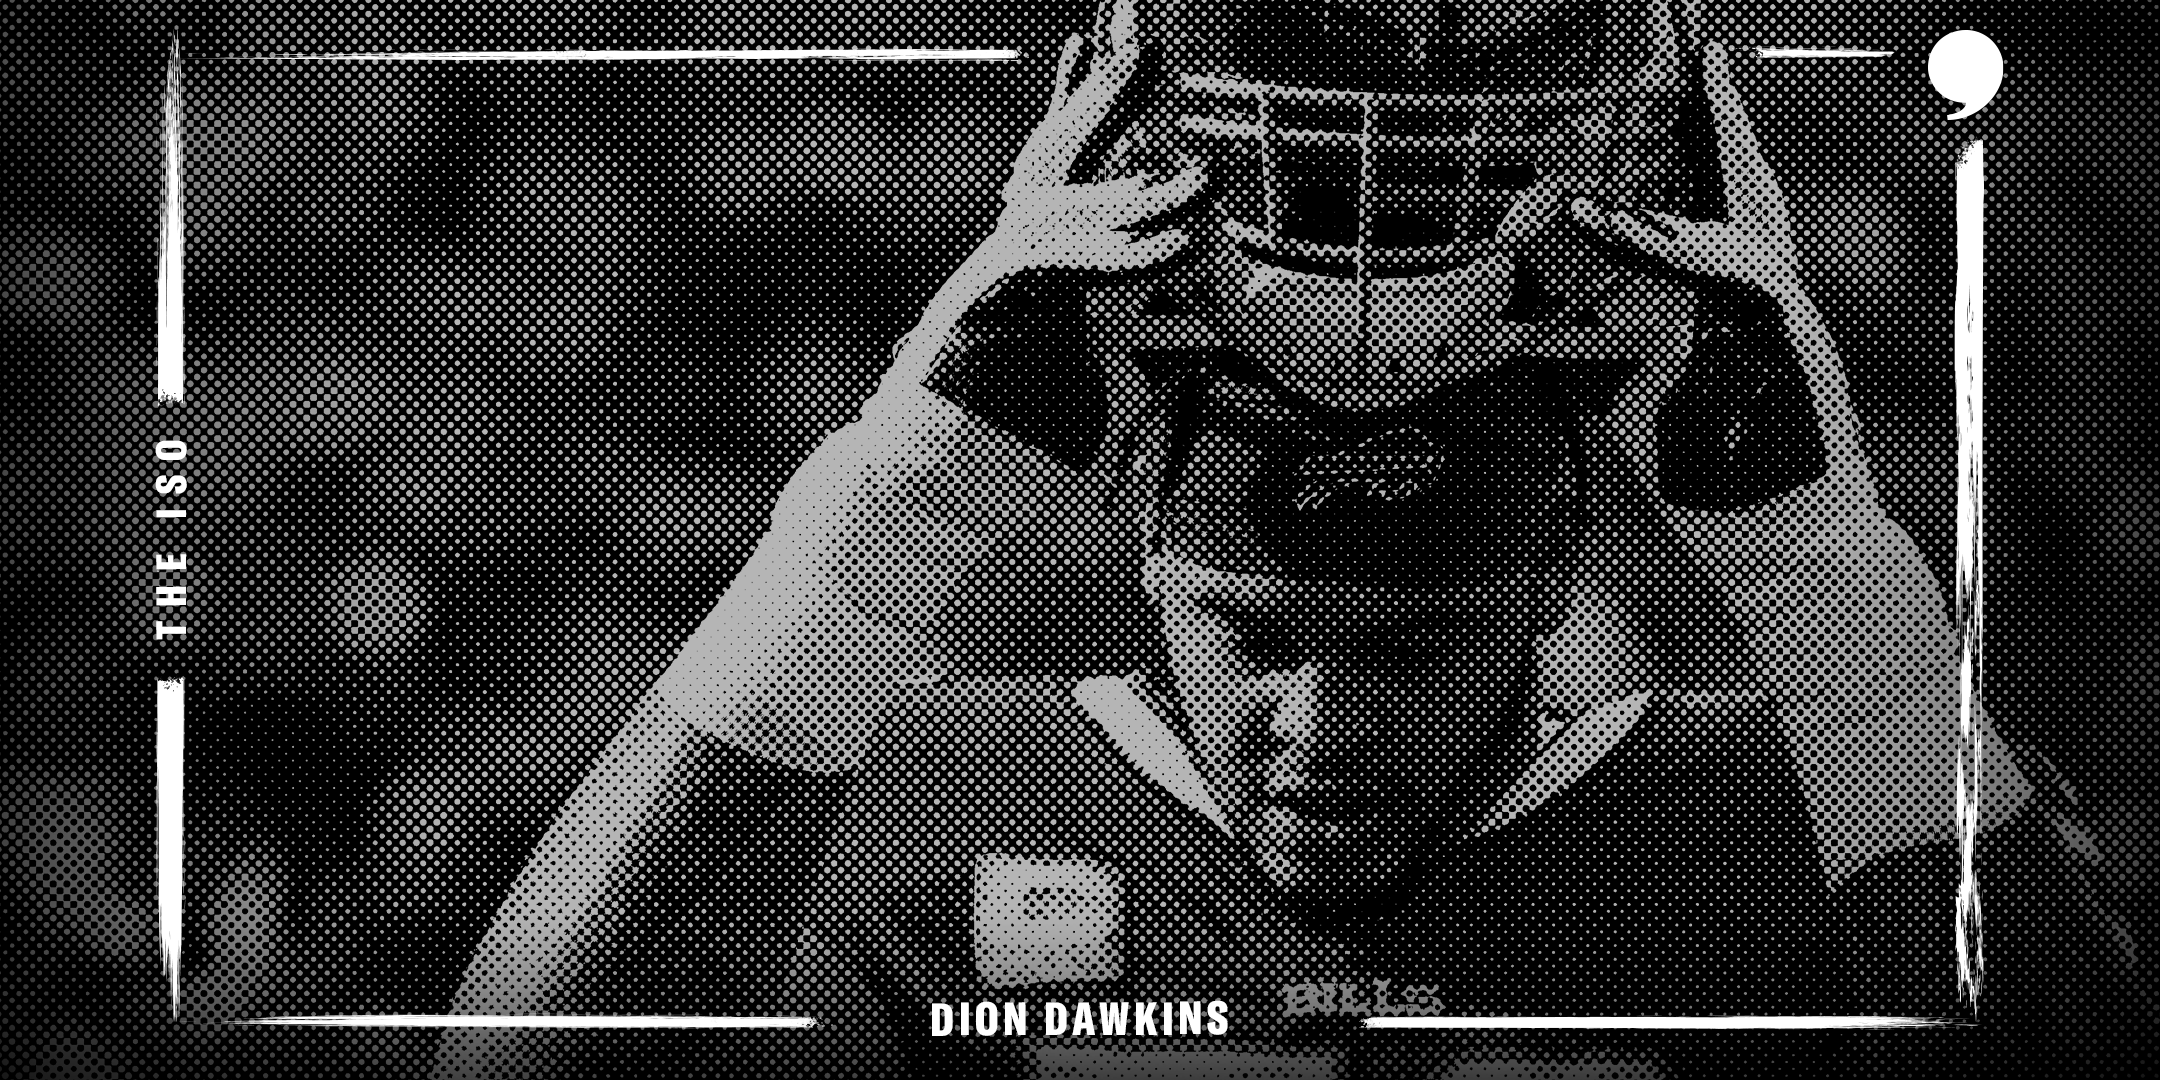 The Iso: Dion Dawkins